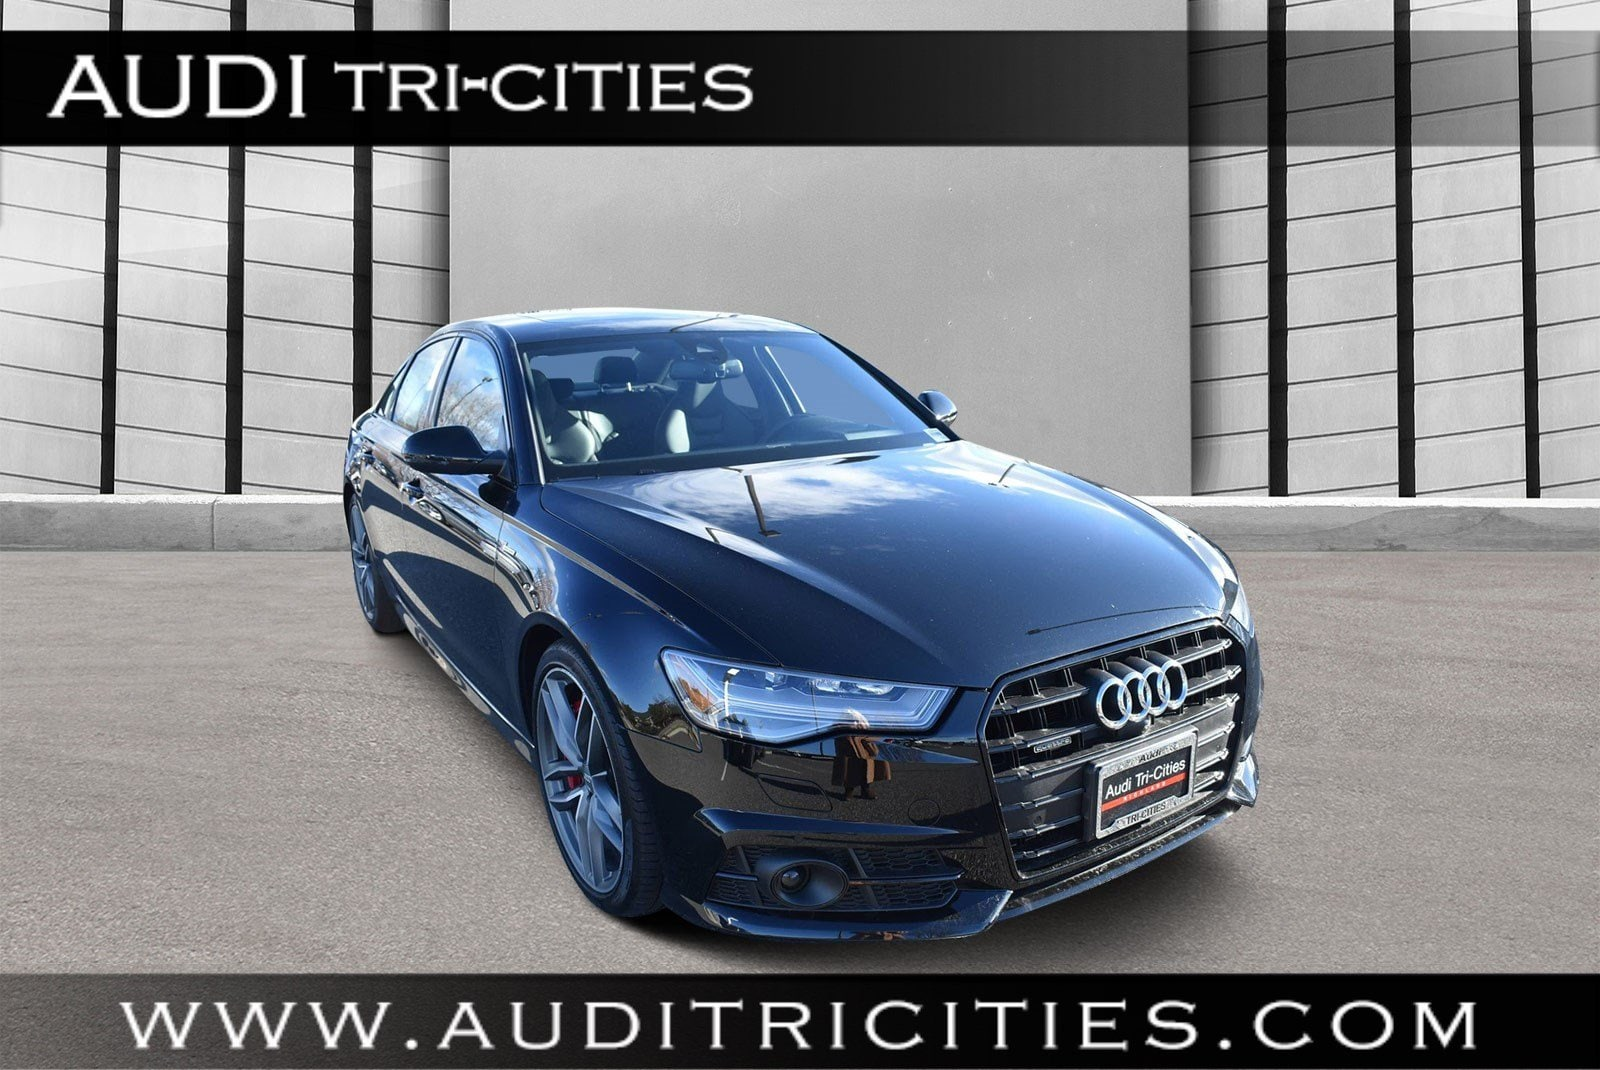 2017 Audi A6 Prestige Competition Package 3.0 TFSI